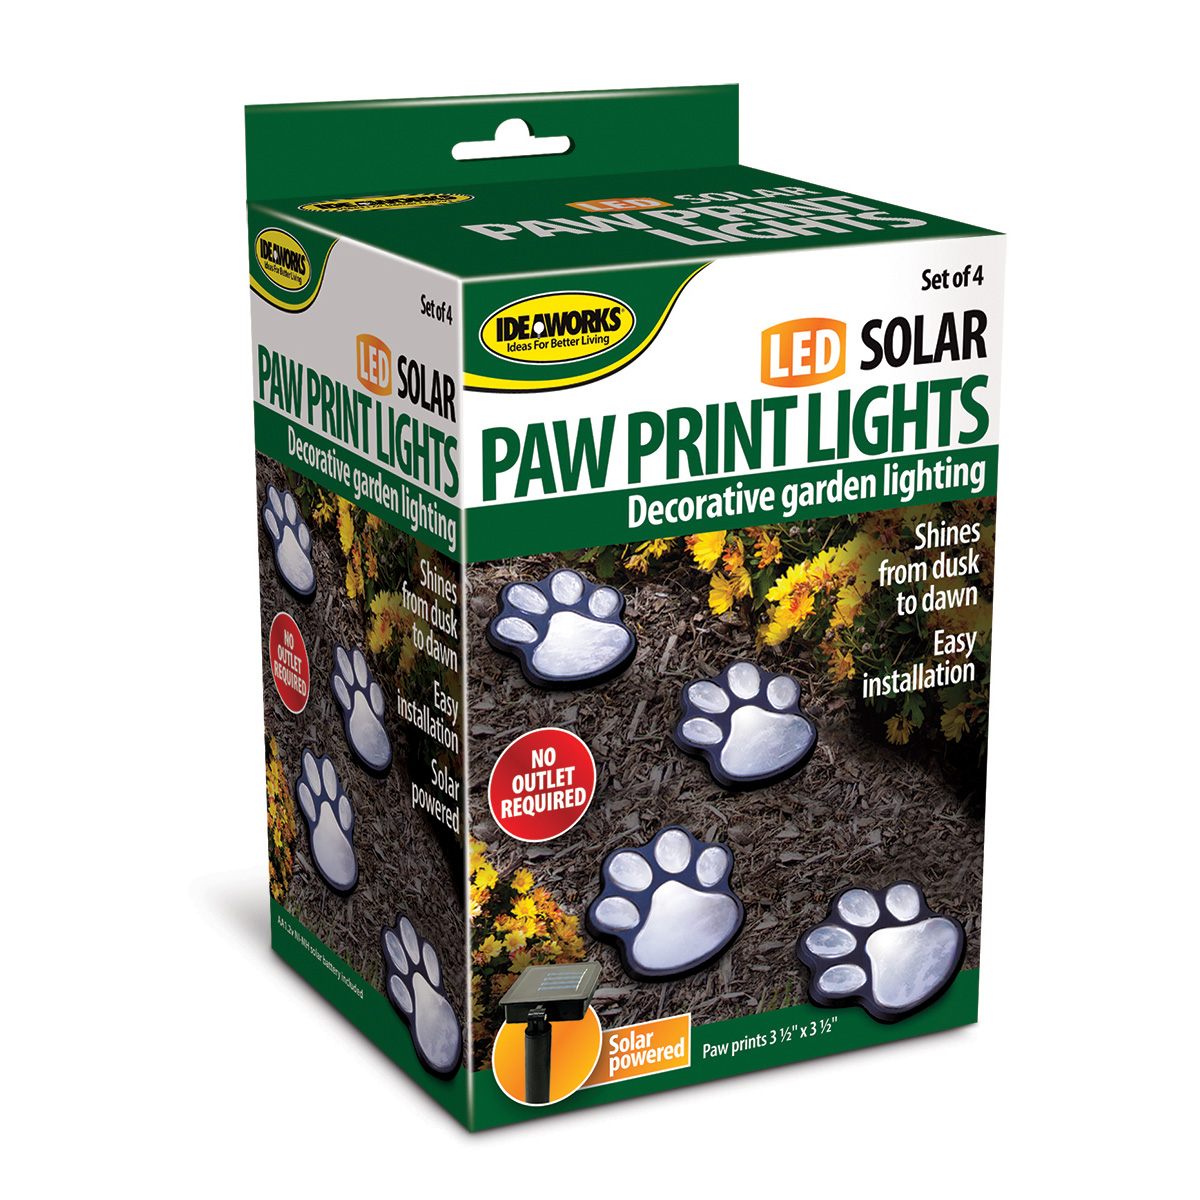 Ideawork's Set of 4 LED Pathway Paw Print Solar Lights